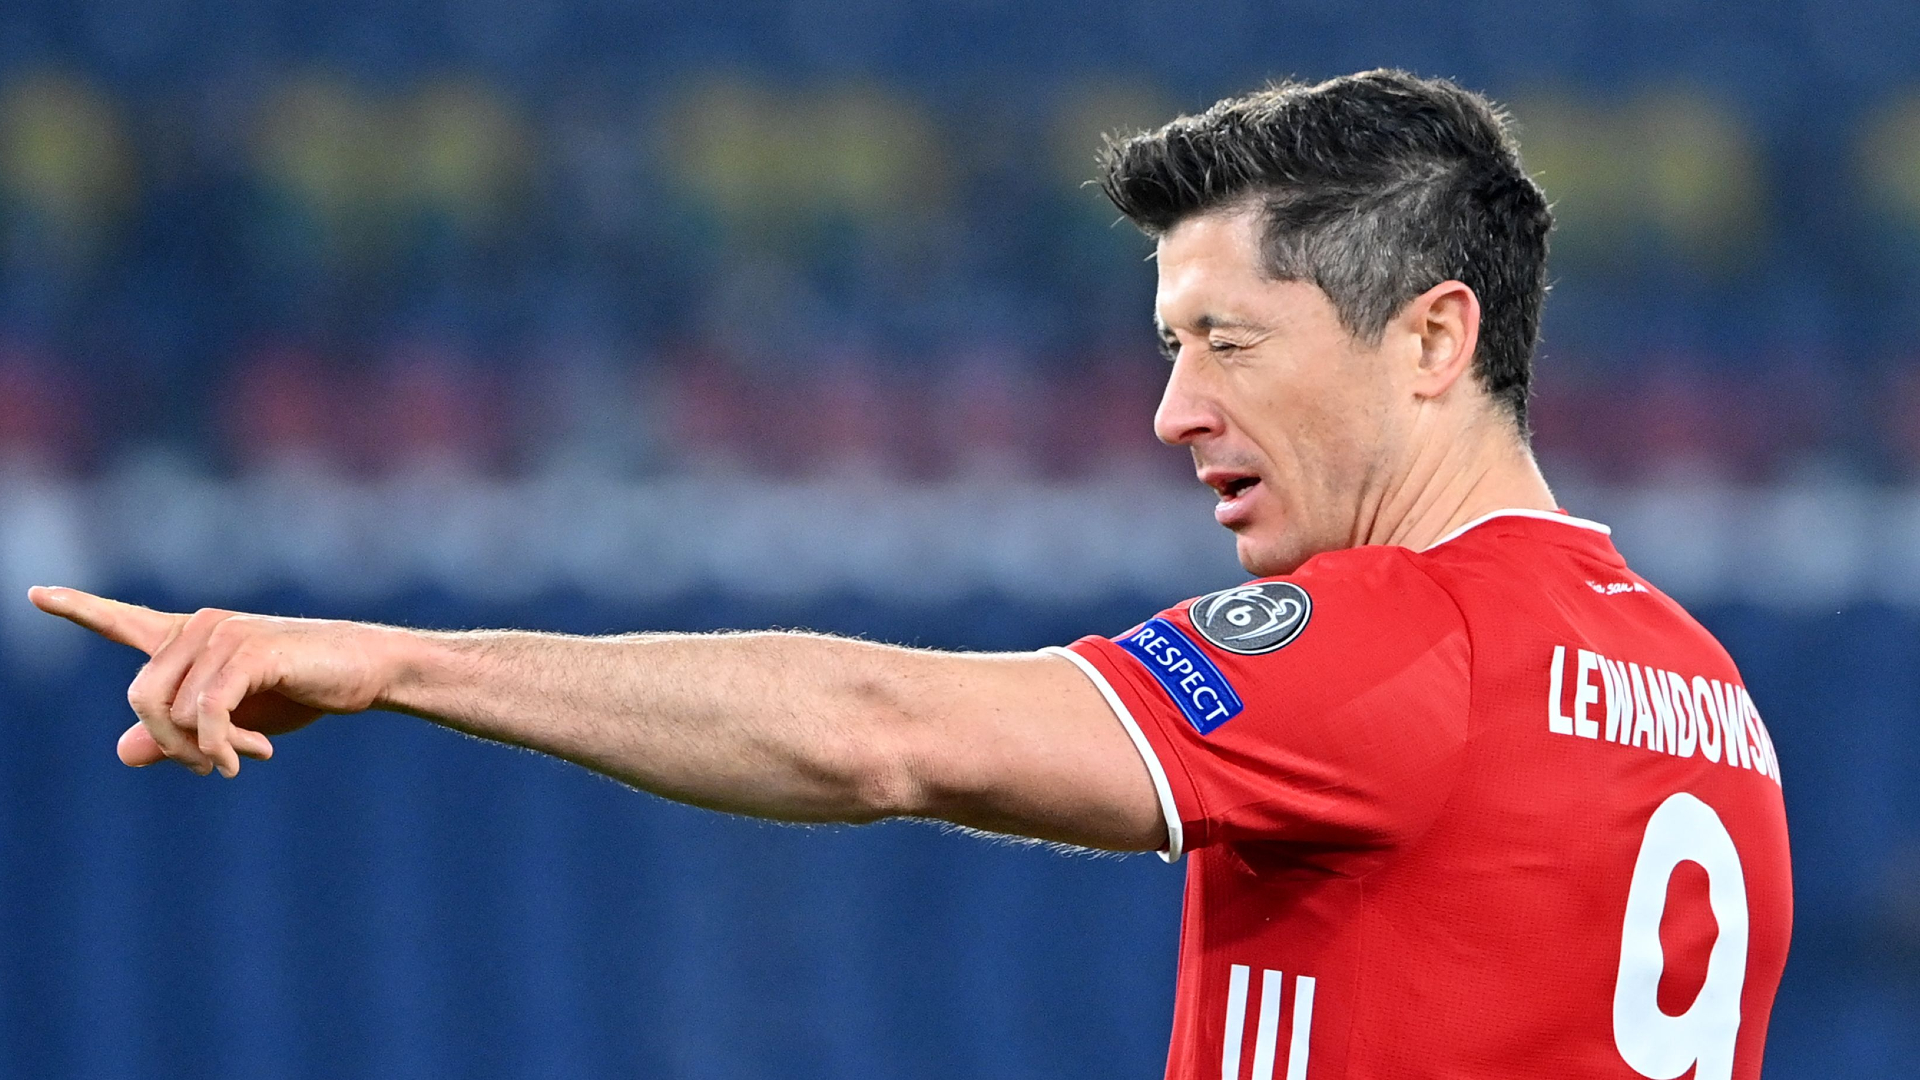 Bayern Munich striker Robert Lewandowski is behind only Lionel Messi and Cristiano Ronaldo after scoring his 72nd Champions League goal.